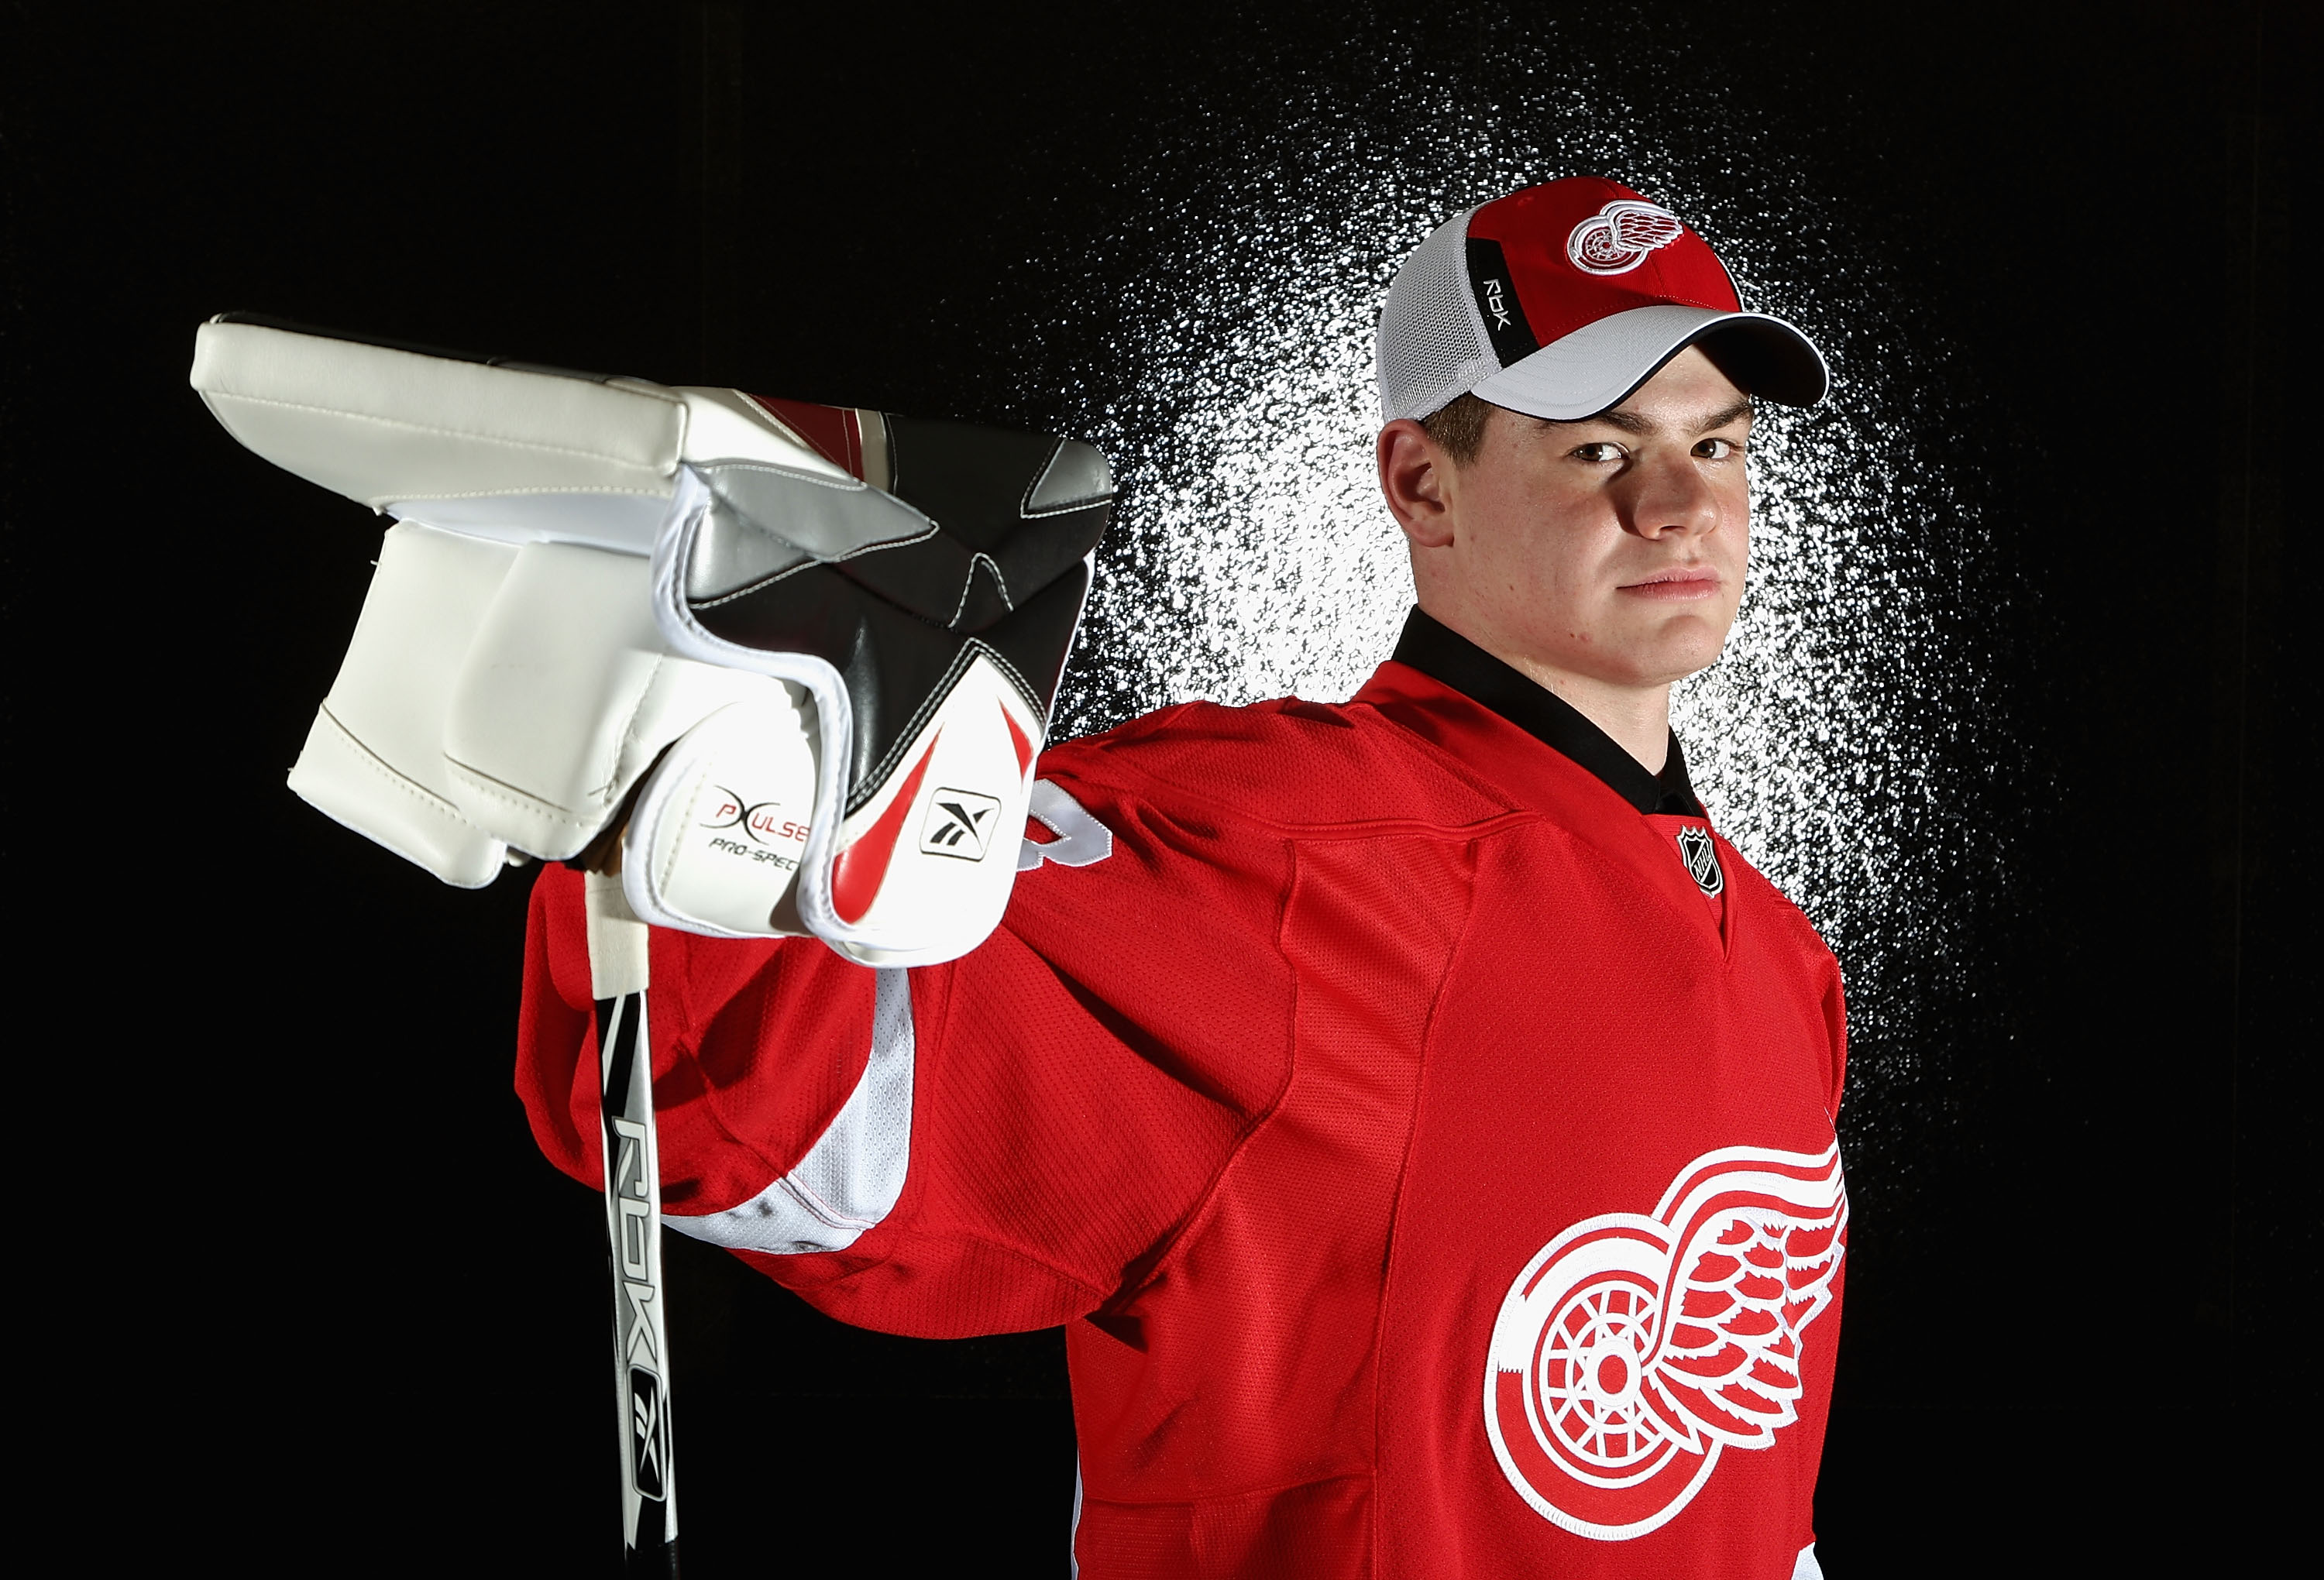 OTTAWA, ON - JUNE 20:  30th overall pick, Thomas McCollum of the Detroit Red Wings poses for a portrait at the 2008 NHL Entry Draft at Scotiabank Place on June 20, 2008 in Ottawa, Ontario, Canada.  (Photo by Andre Ringuette/Getty Images)